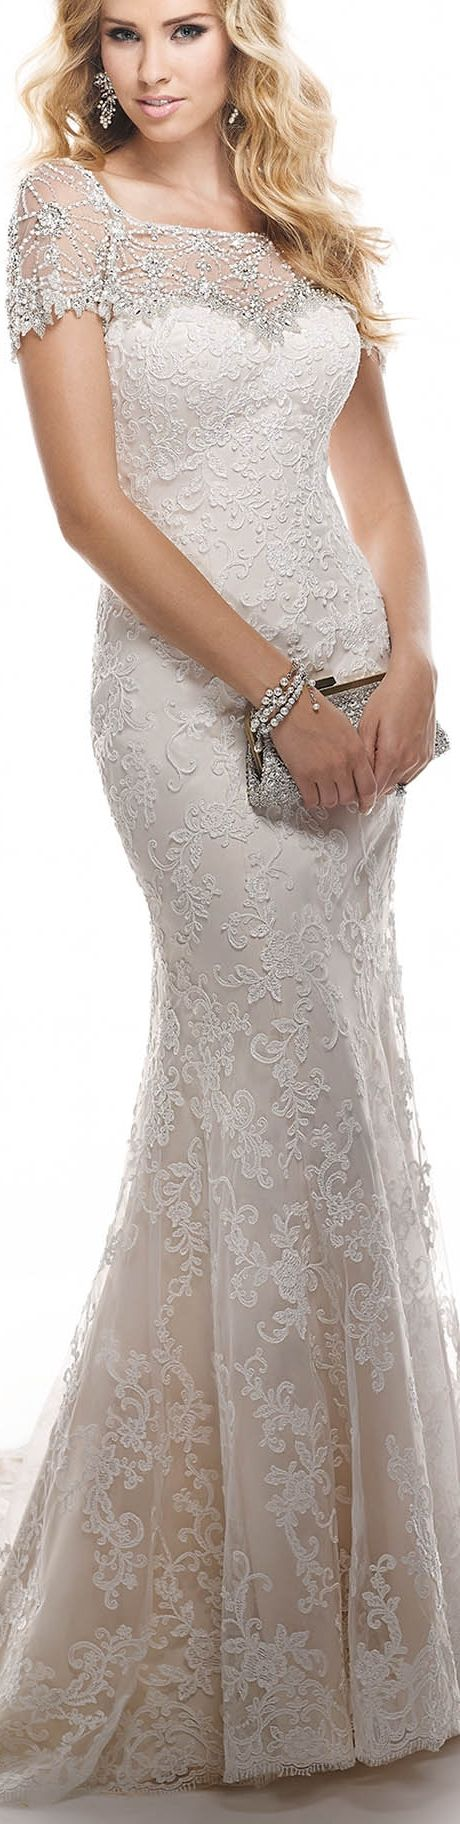 Nice maggie sottero Father may You robe me with this dress that I may sing of Your love forever and bring You eternal glory and praise in Jesus Name amen